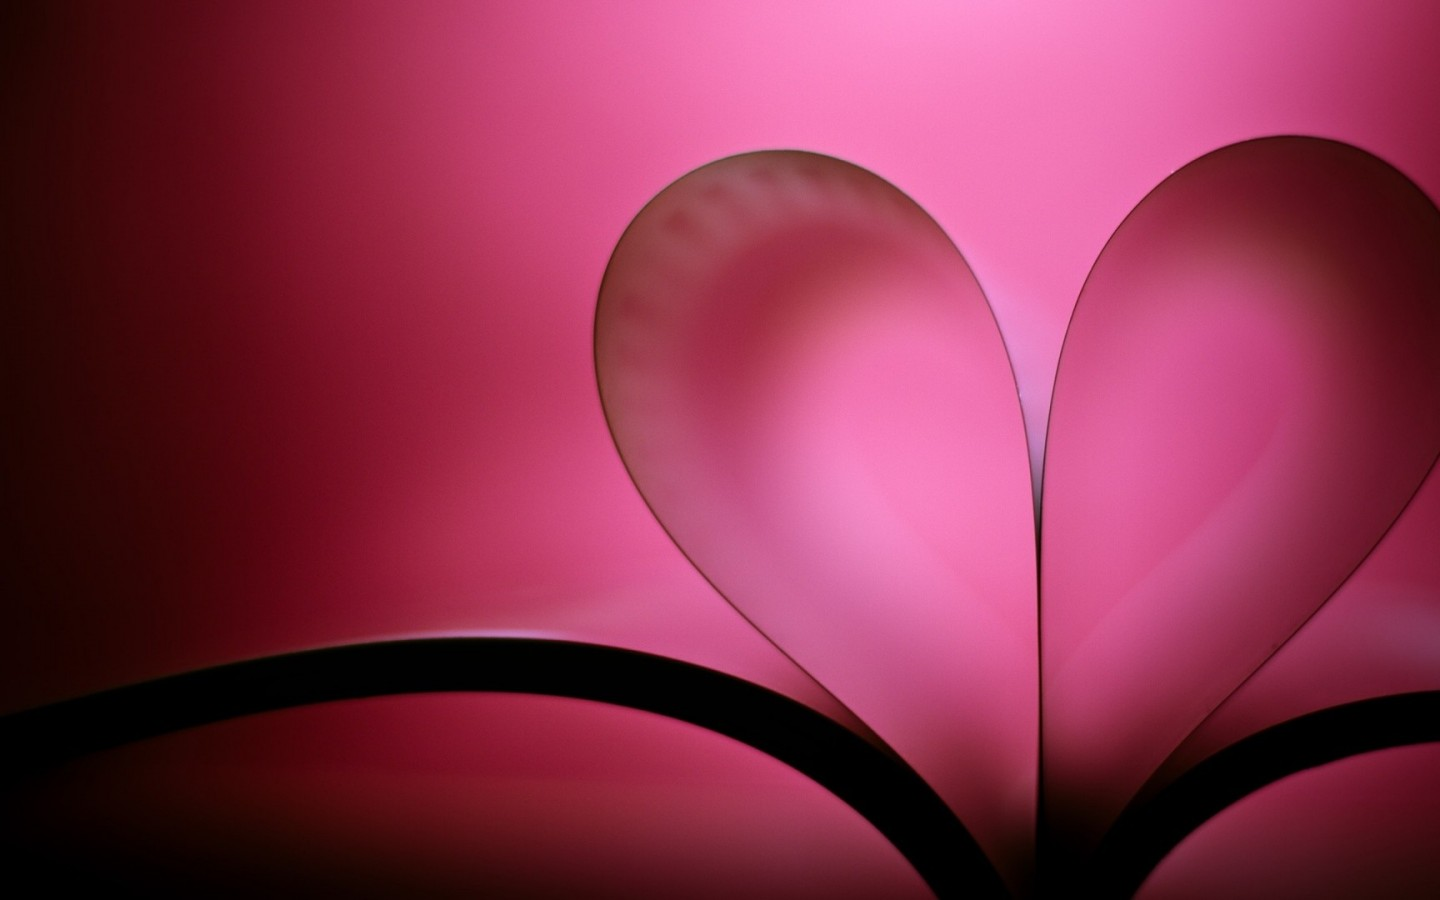 Top Love Wallpaper Full Hd : HD Love Wallpapers for Laptop - WallpaperSafari